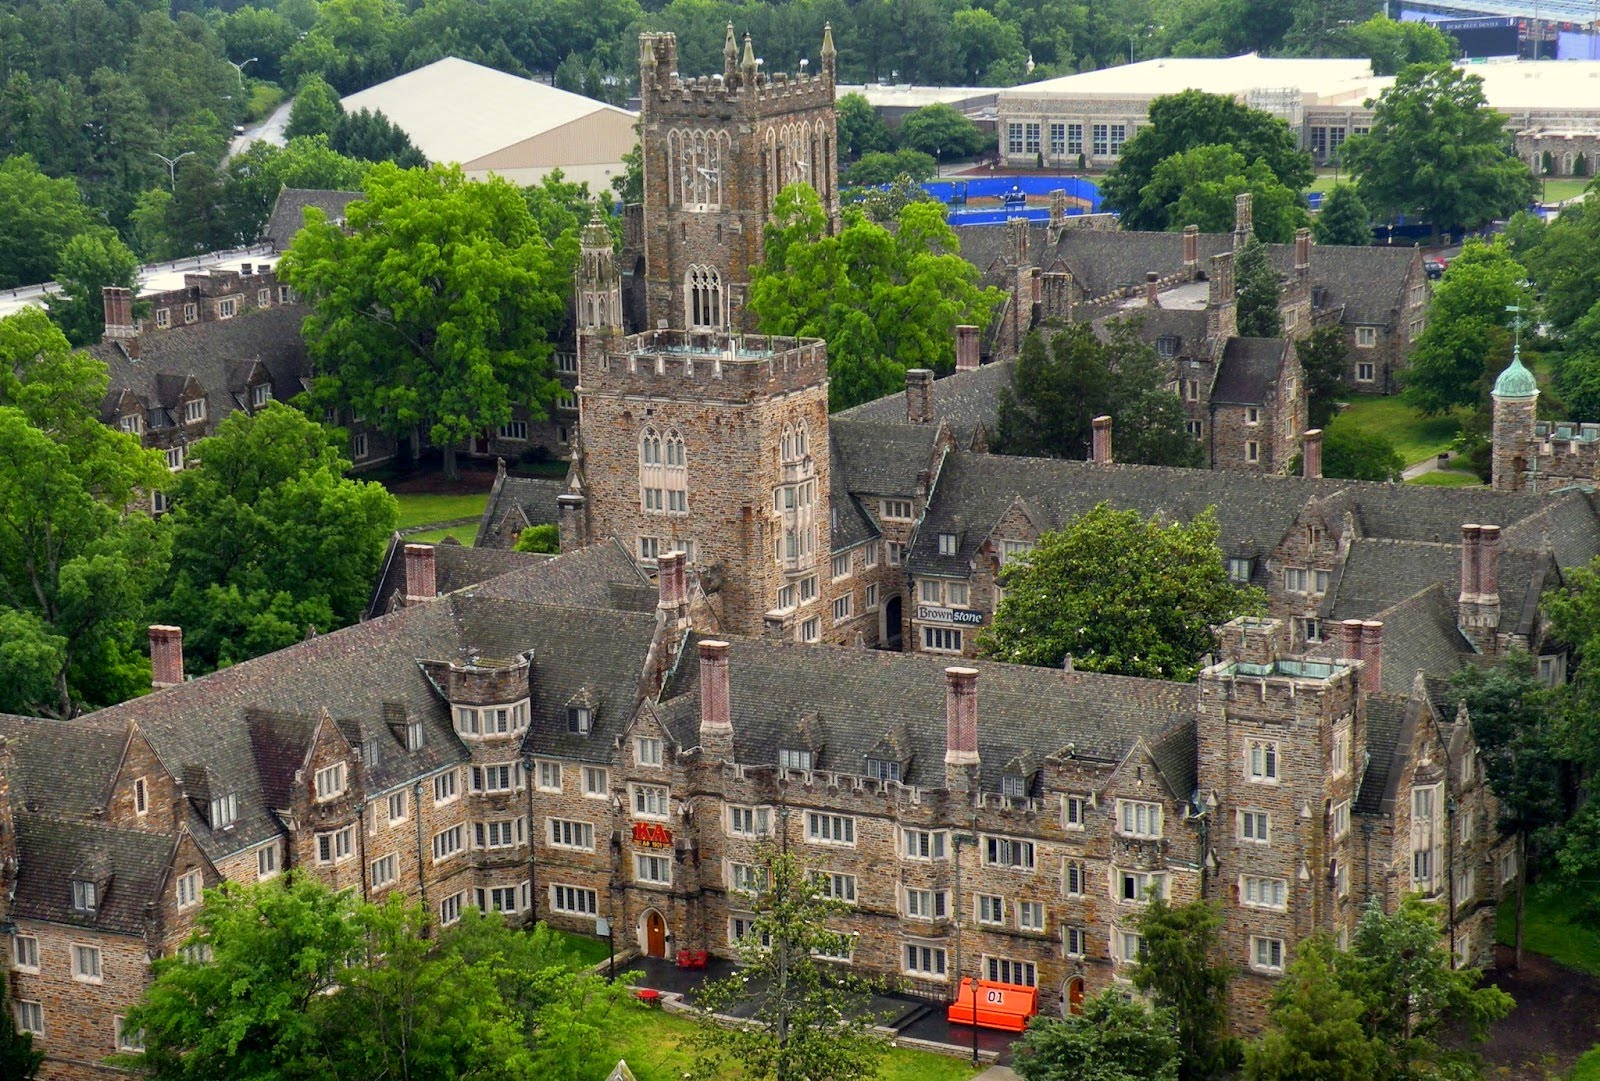 AsAm News | Racist Comments Reported by Asian Students at Duke